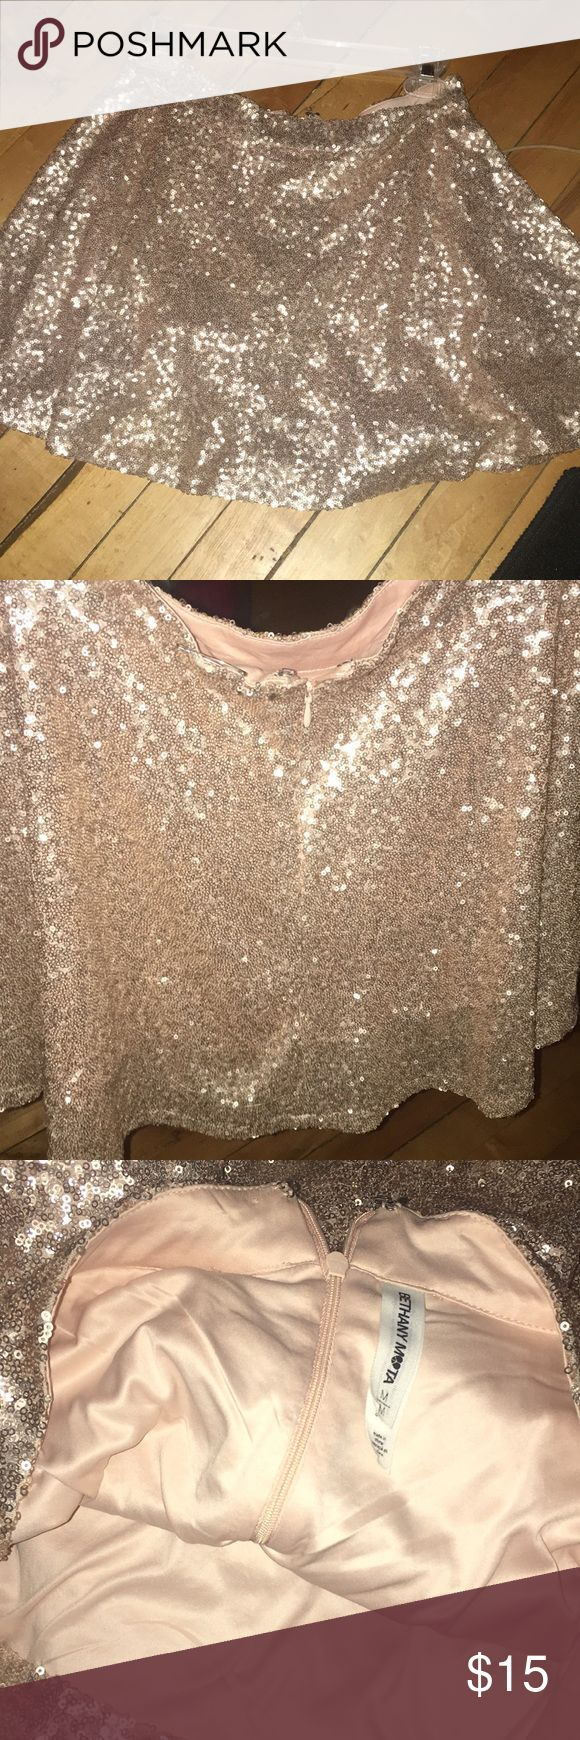 sparkly skirt sequin high waisted skater skirt with a zipper for closure very nice Quality with a silk inside Aeropostale Skirts Circle & Skater